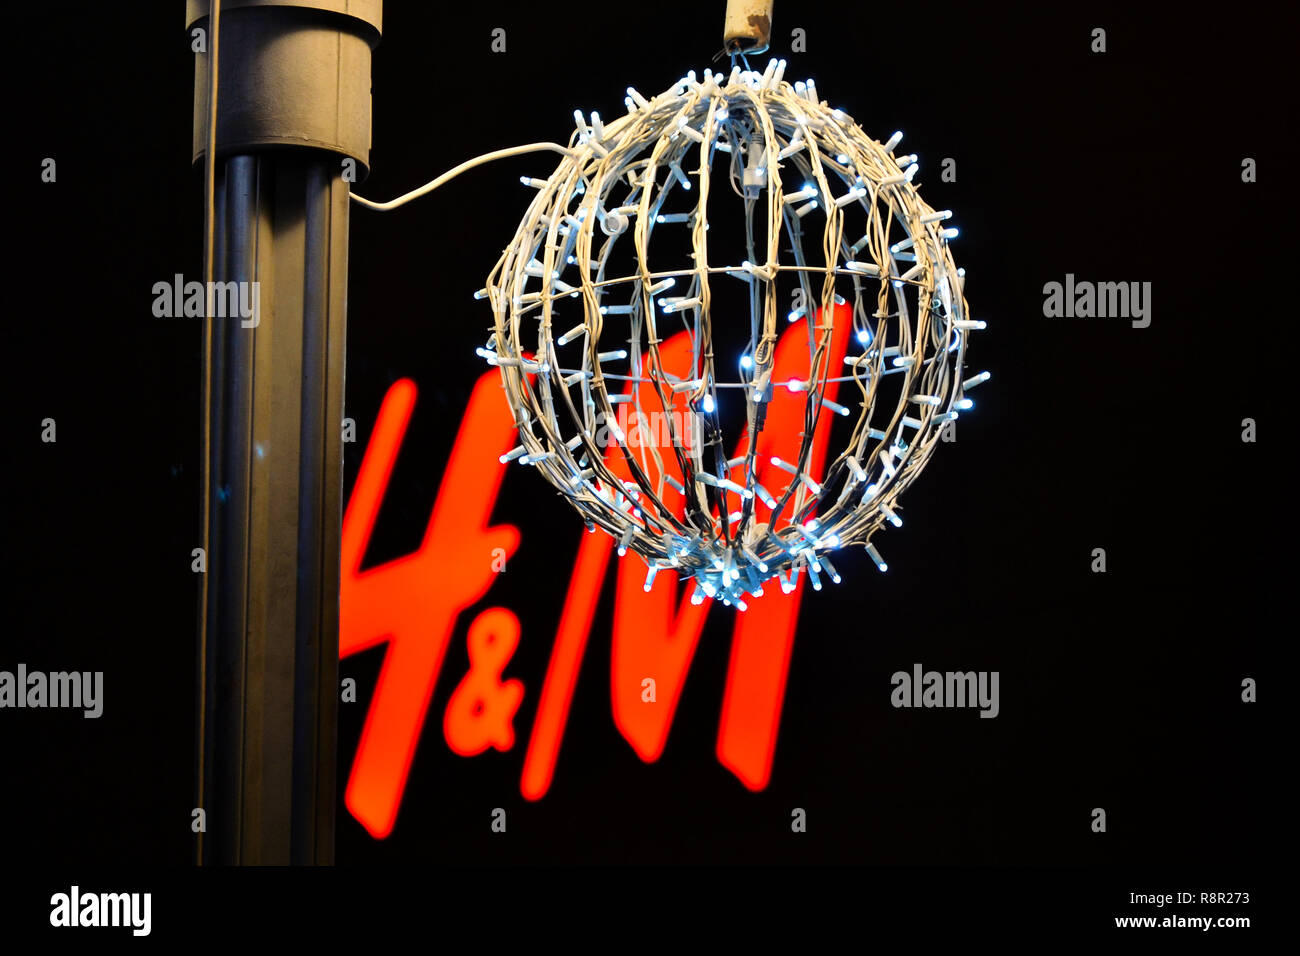 Nis,Serbia,December 24,2016:decorative big ball made of Christmas lights in front of H&M logo by night on street for holidays. - Stock Image